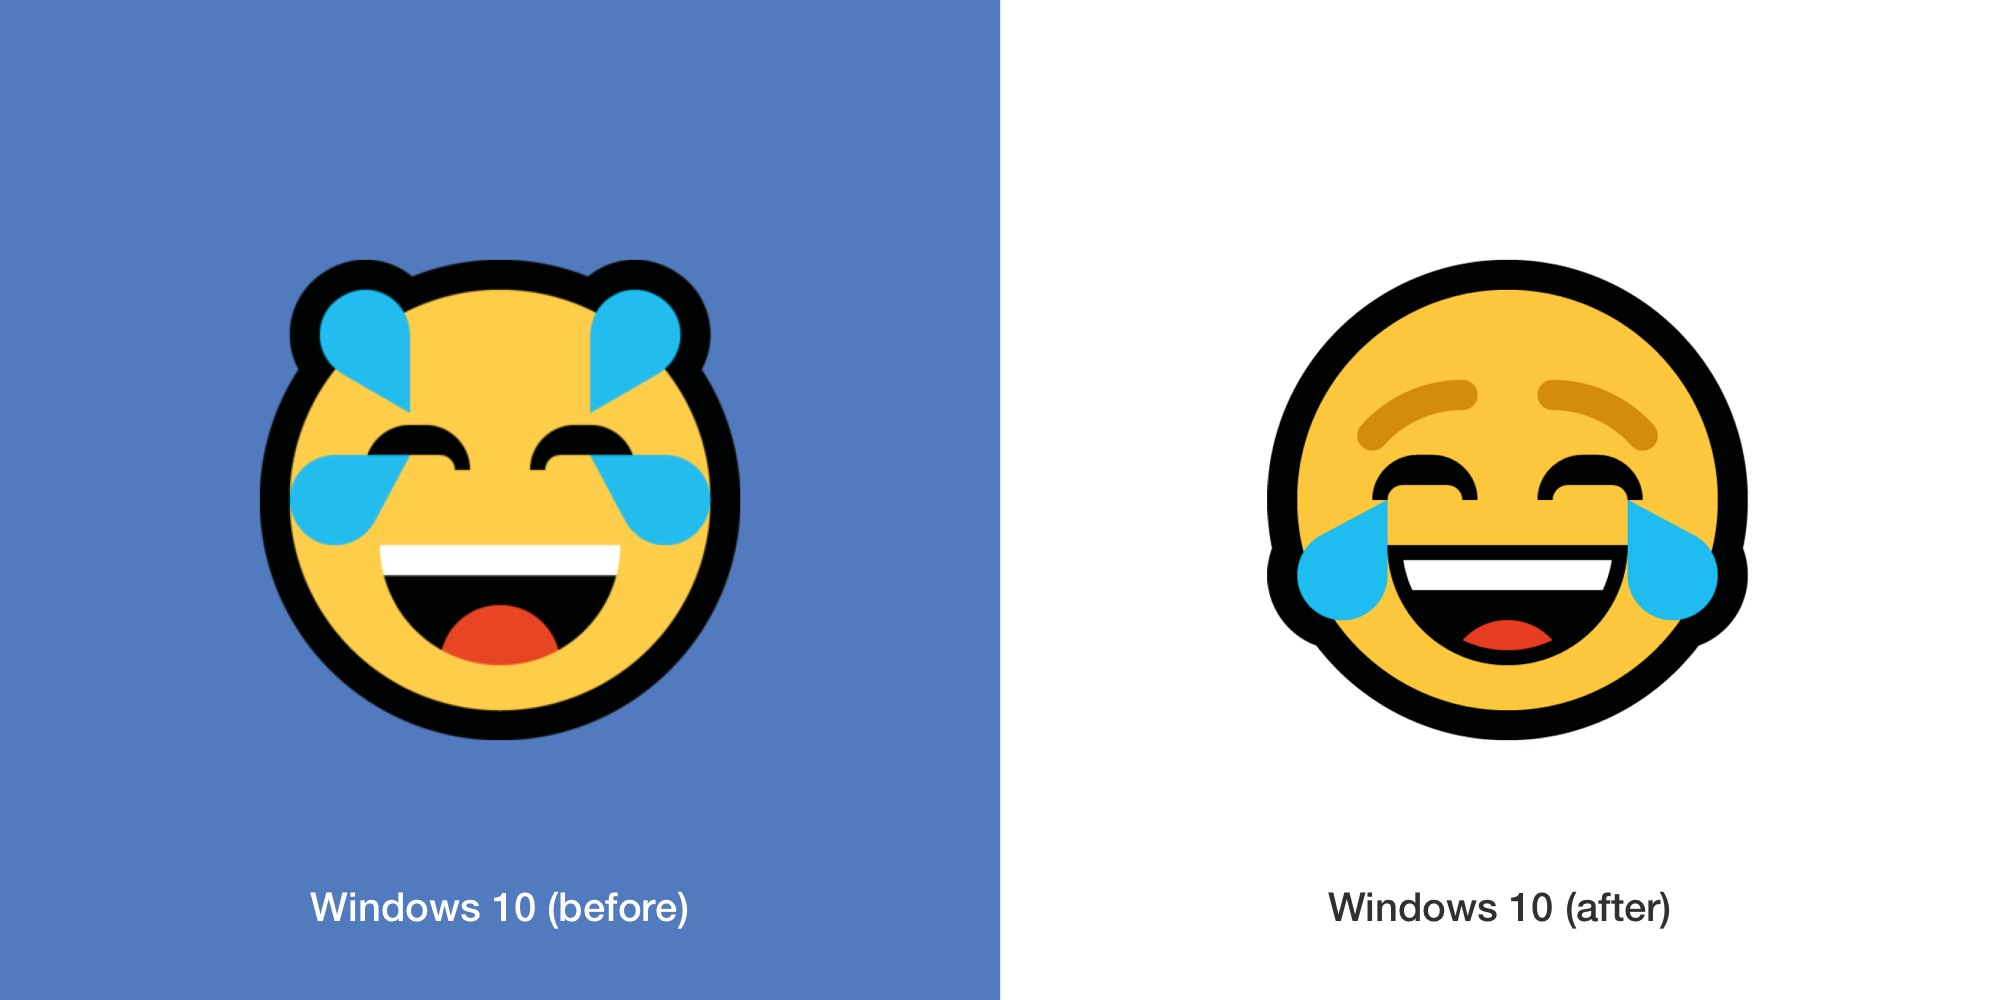 face-with-tears-of-joy-emojipedia-windows10-april-2018-emojipedia